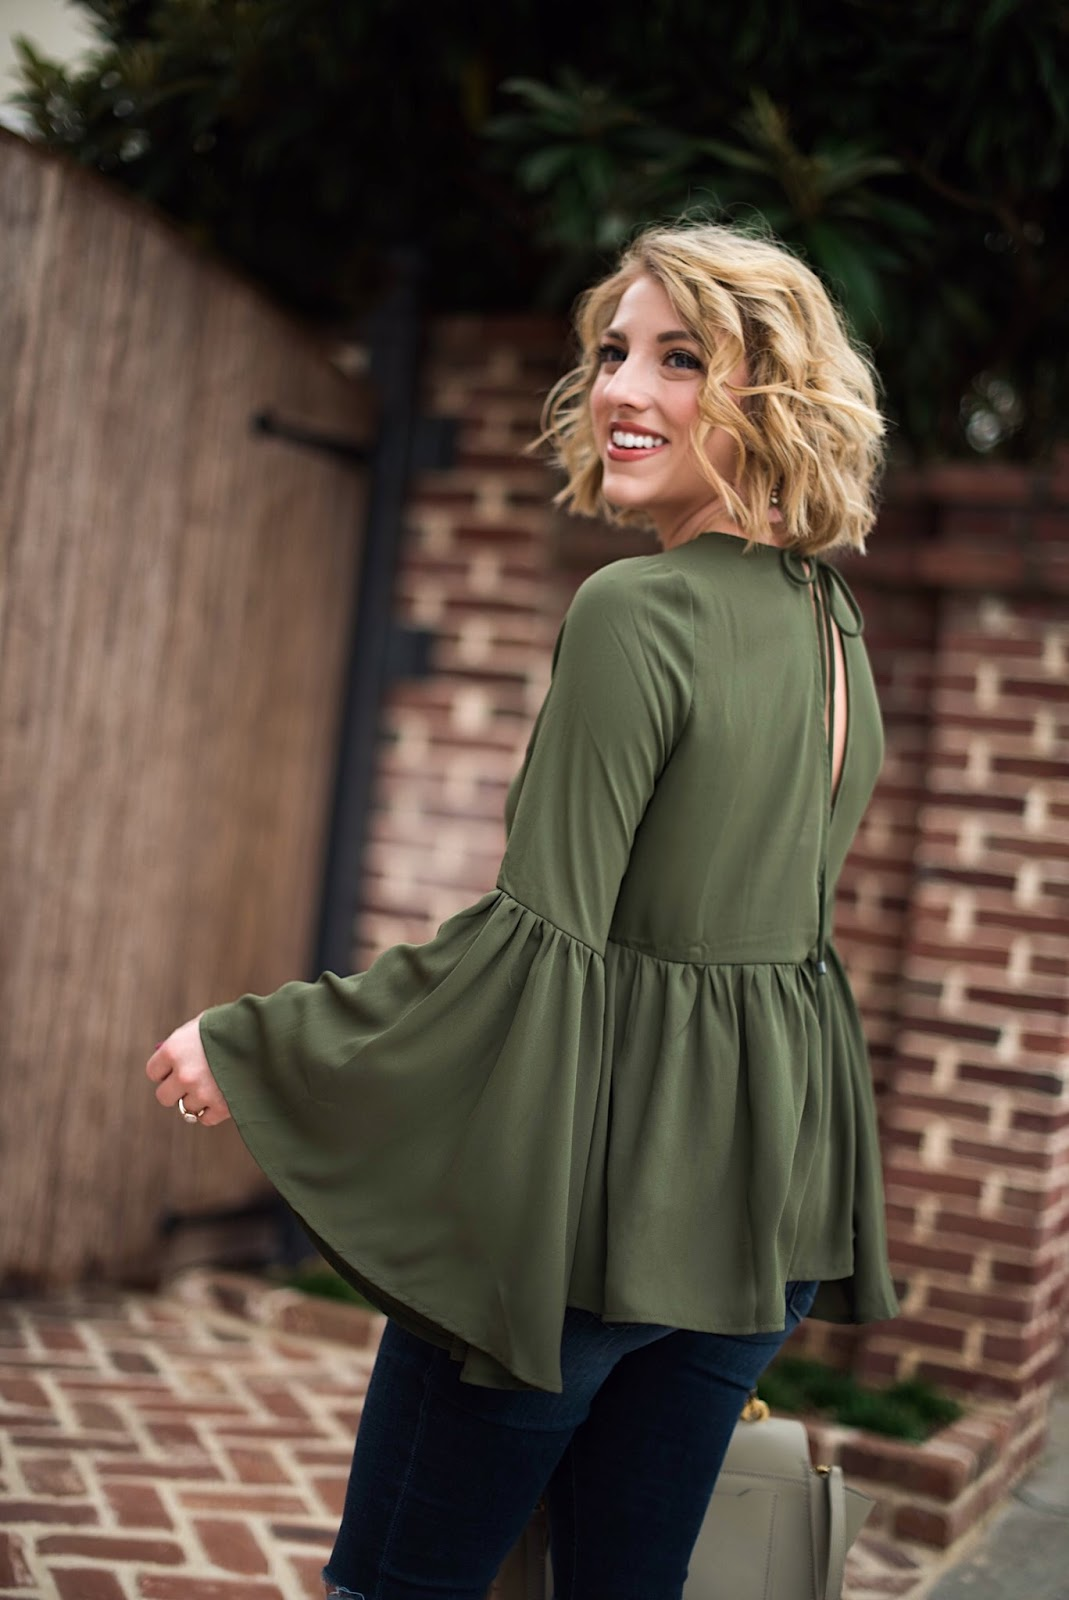 Olive Green Ruffle Hem Top - Something Delightful Blog @racheltimmerman